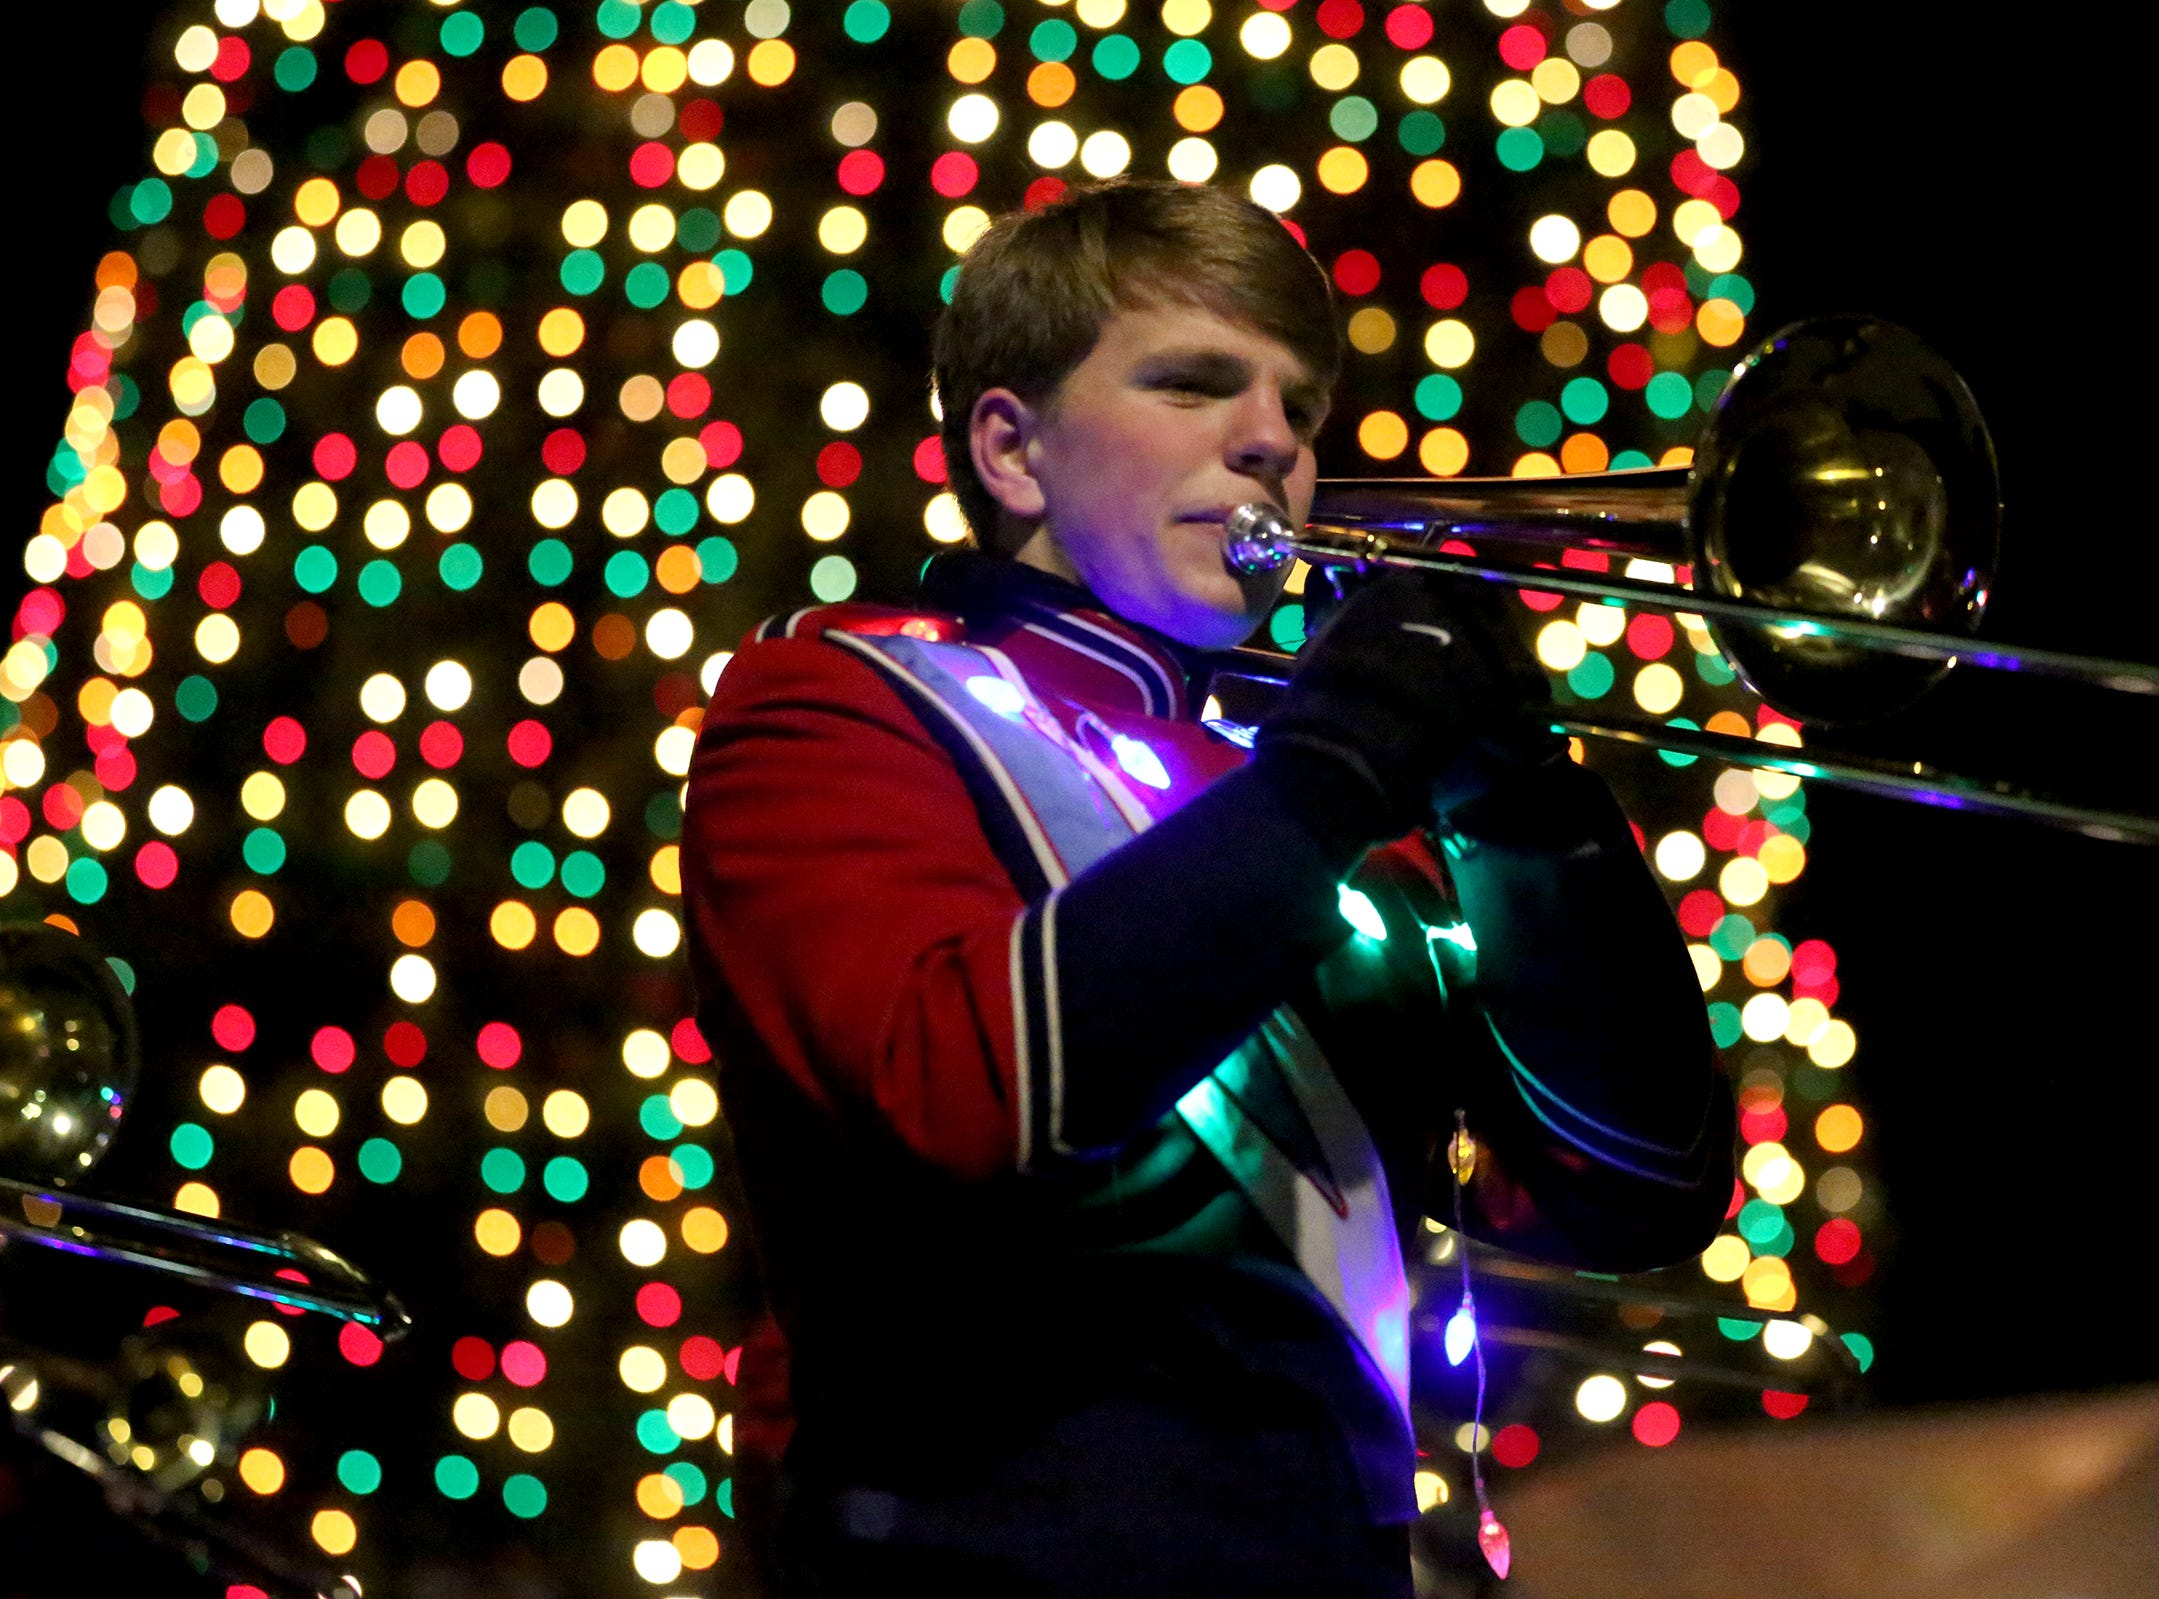 A marching band member from South Salem plays his trombone during the Keizer Holiday Lights Parade in Keizer on Saturday, Dec. 8, 2018.